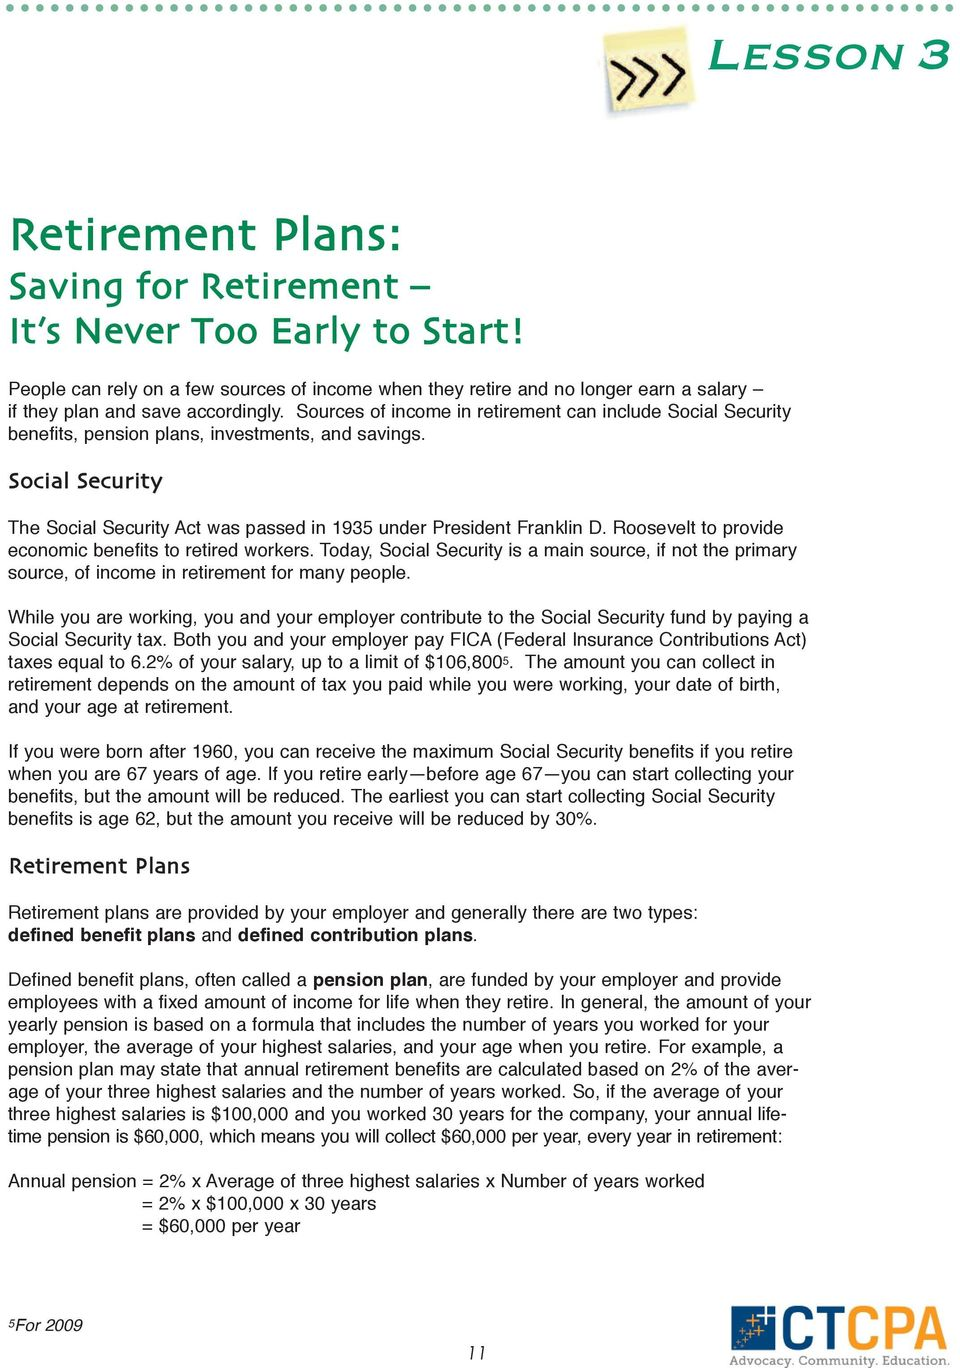 Financial Planning  Introduction  Learning Objectives - PDF